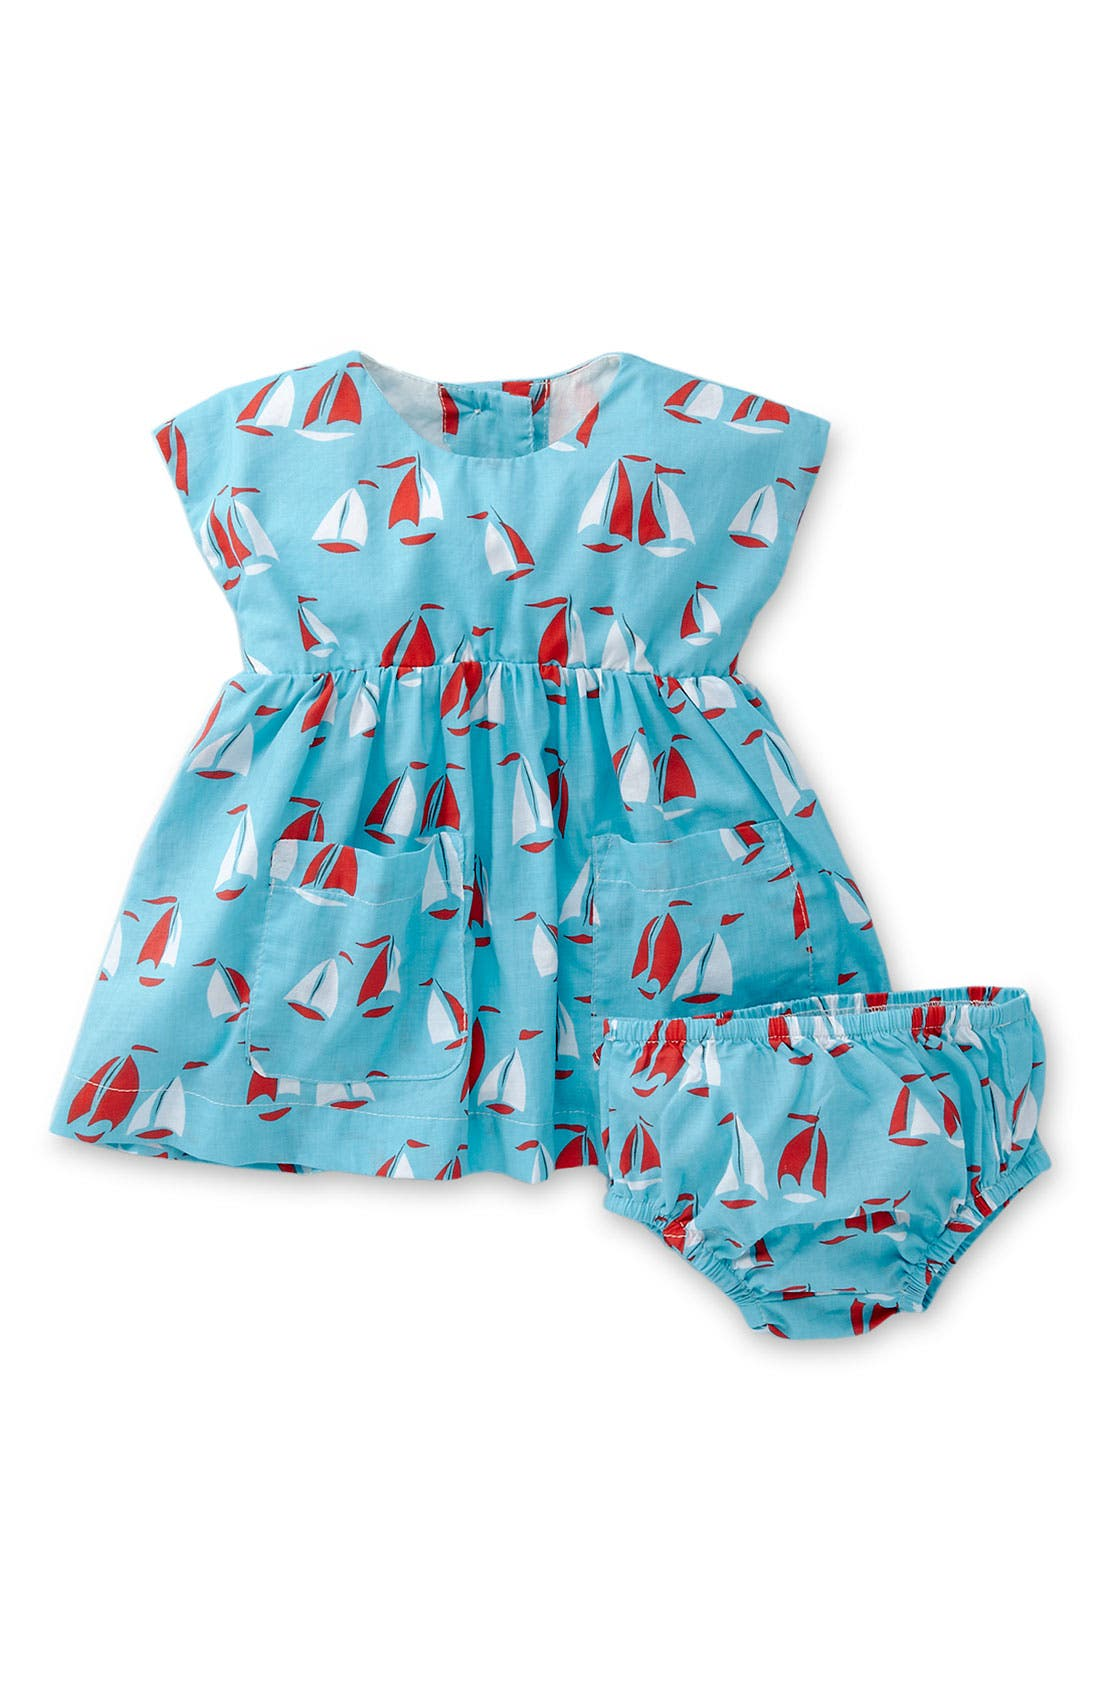 Alternate Image 1 Selected - Mini Boden 'Fifties' Dress (Infant)